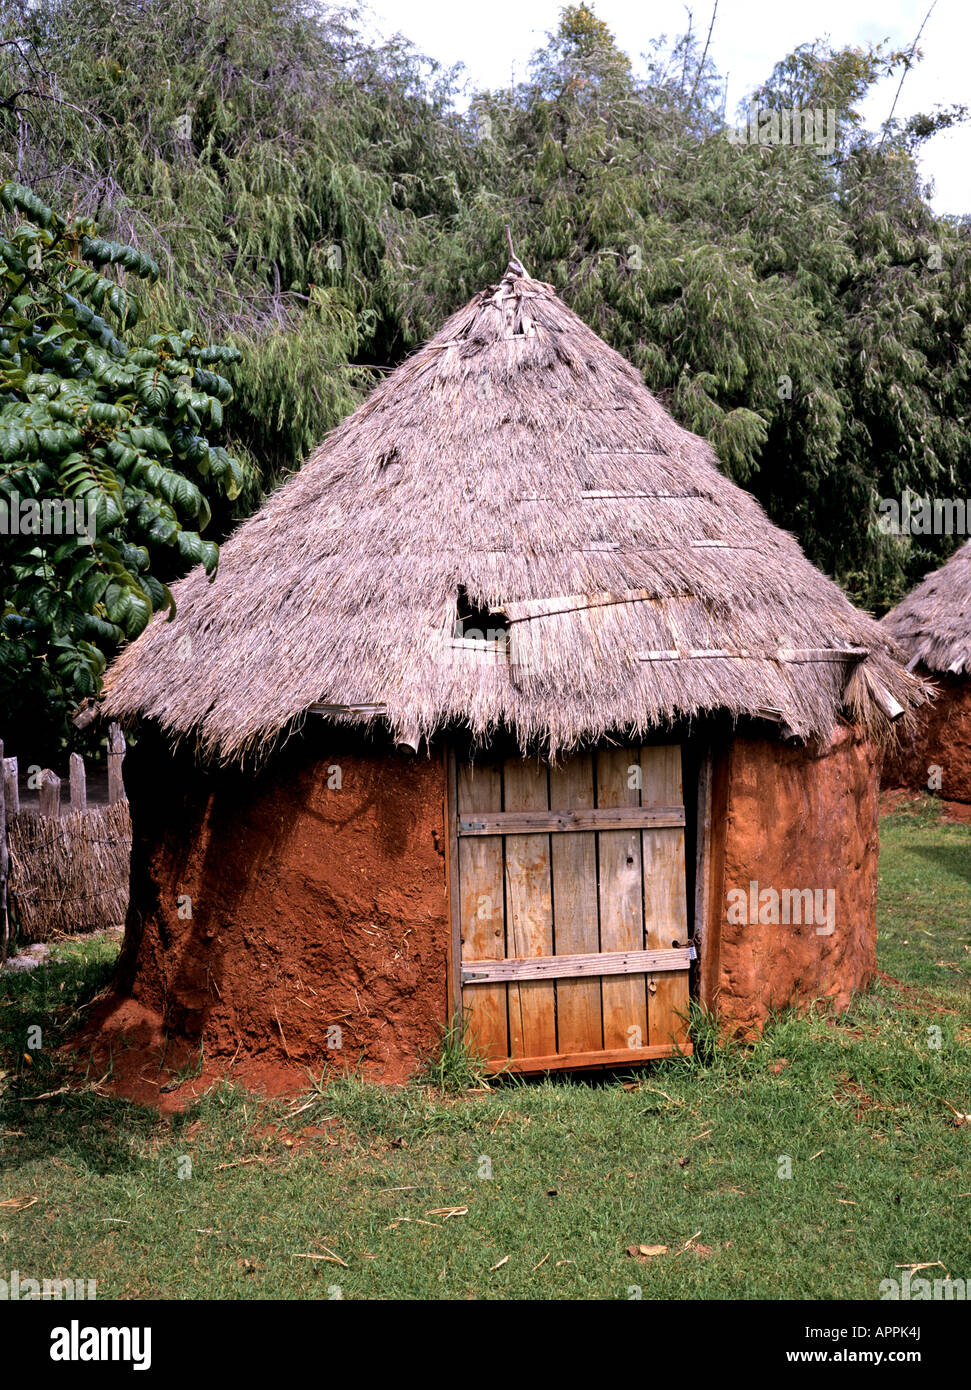 Small round thatched mud hut in Perth zoological garden Western Australia Stock Photo